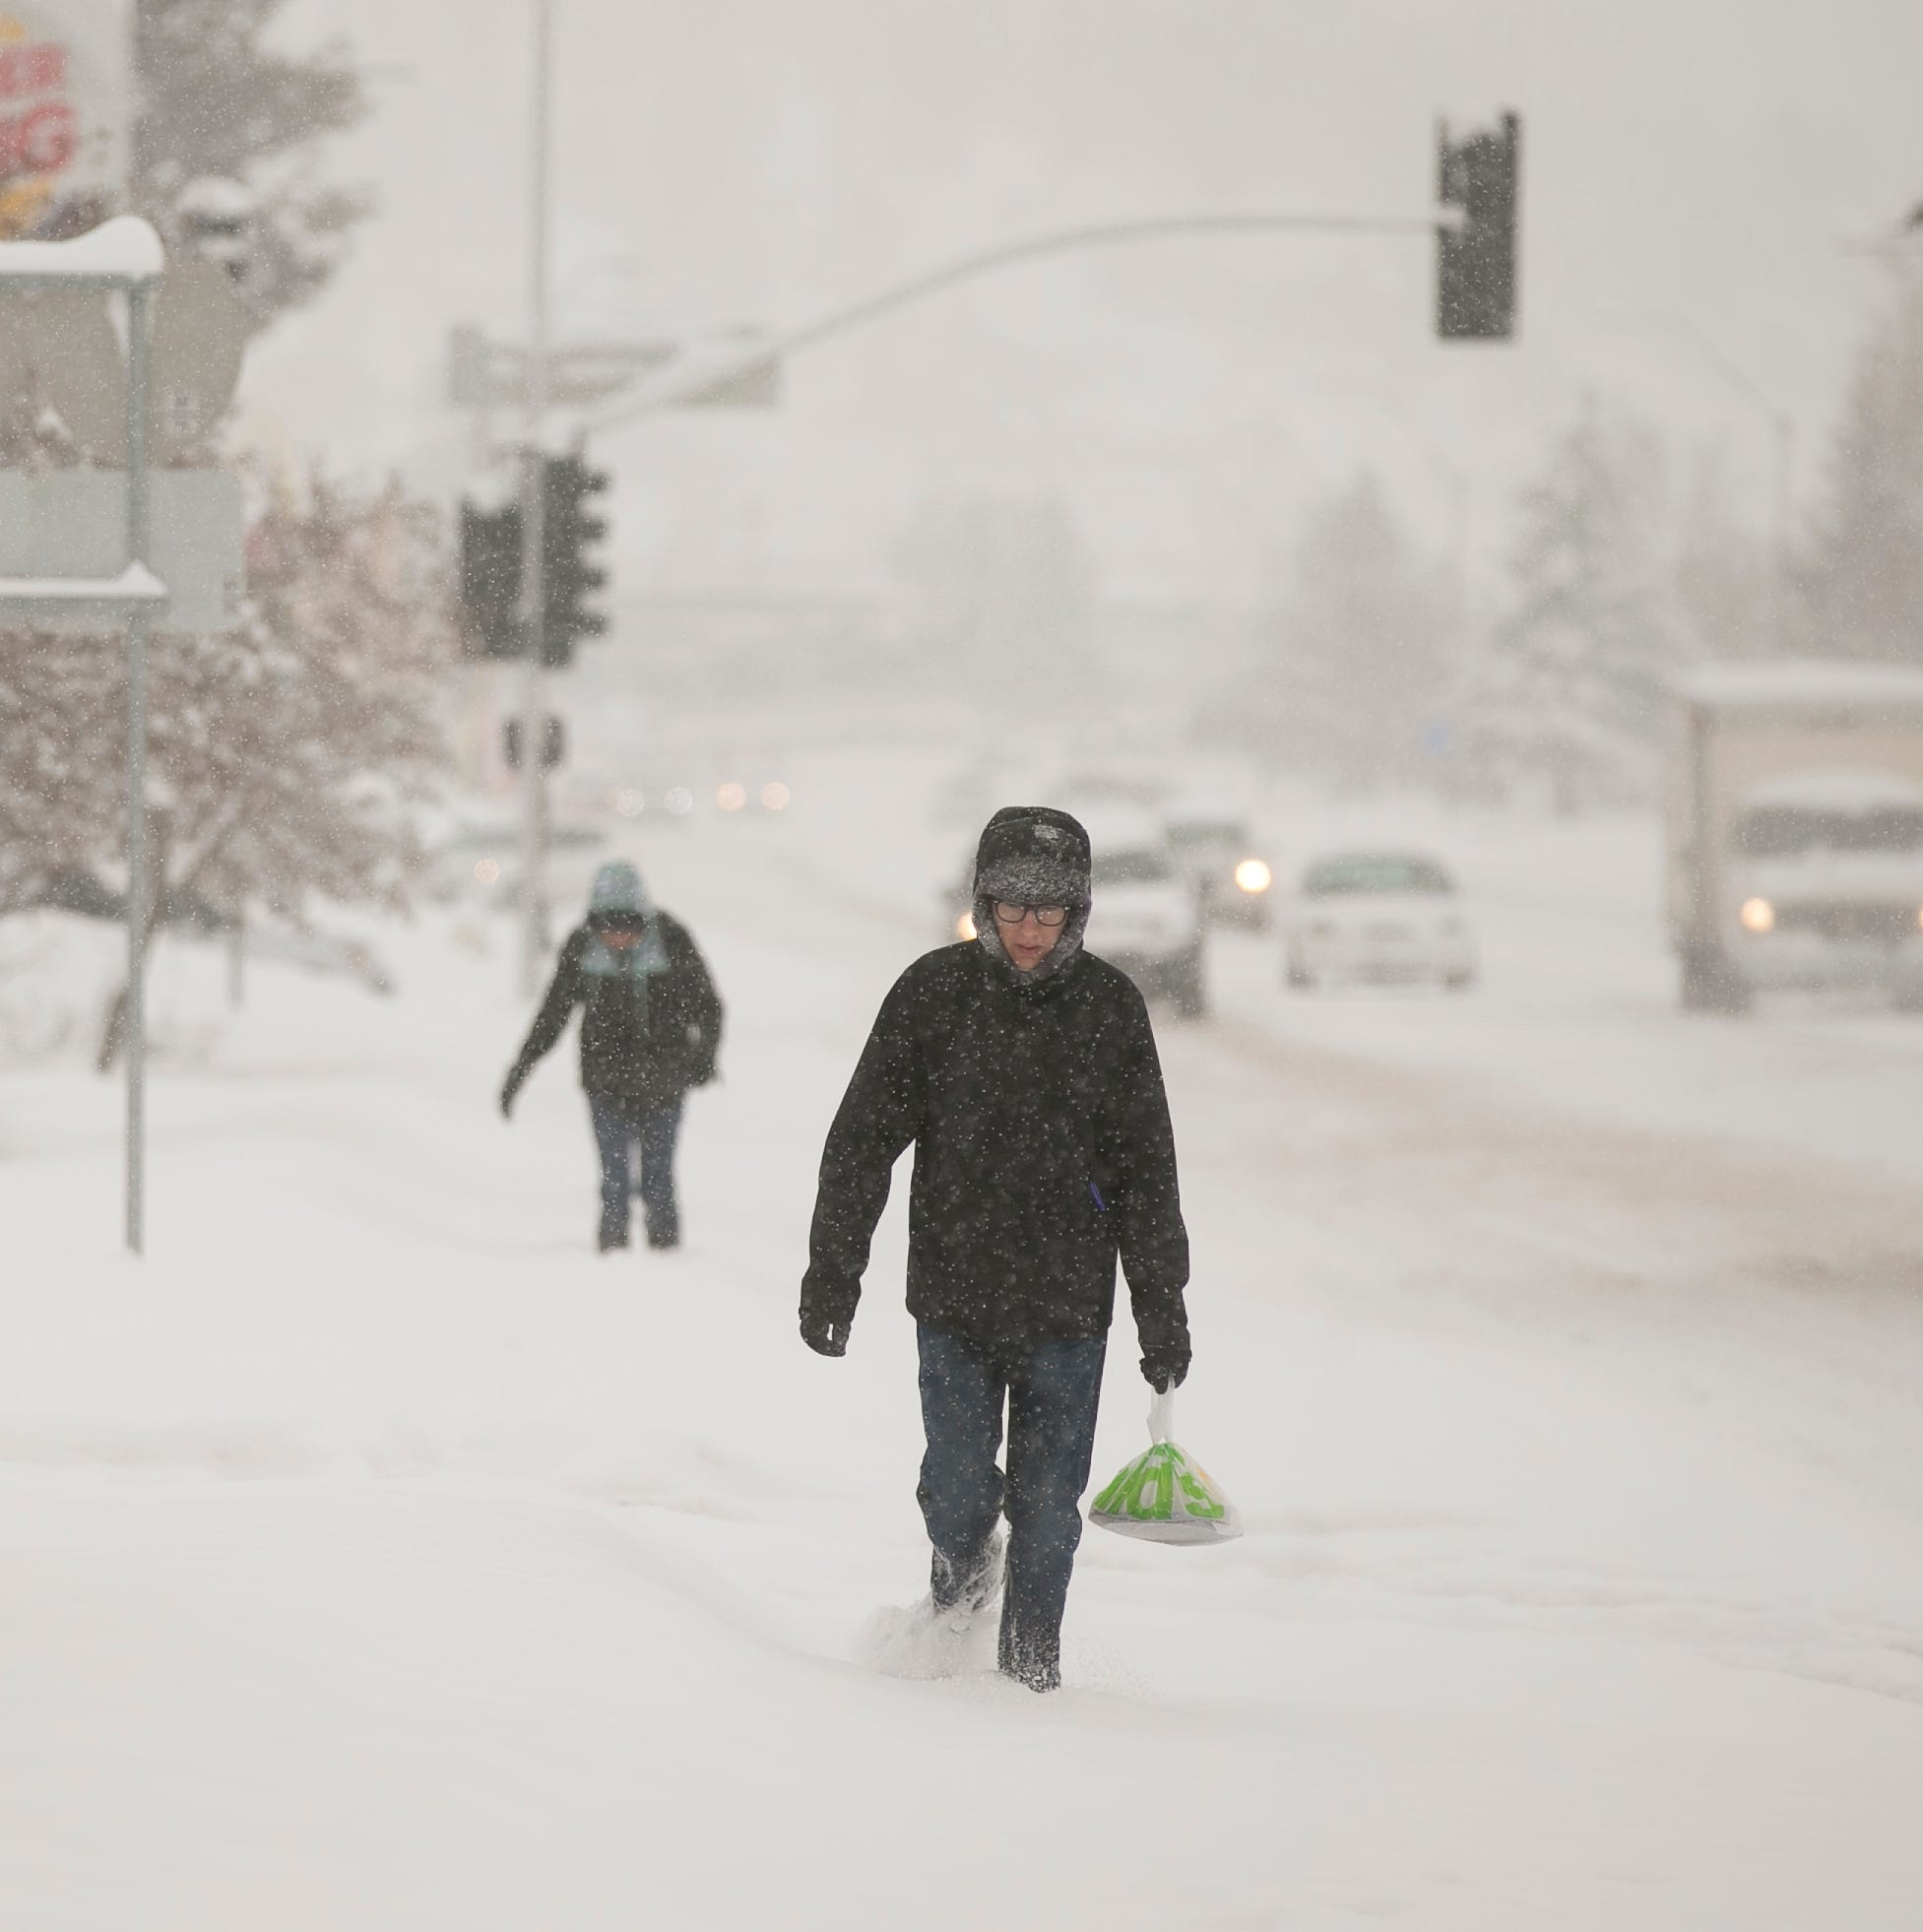 Arizona storm updates: 16 inches at Snowbowl recorded so far